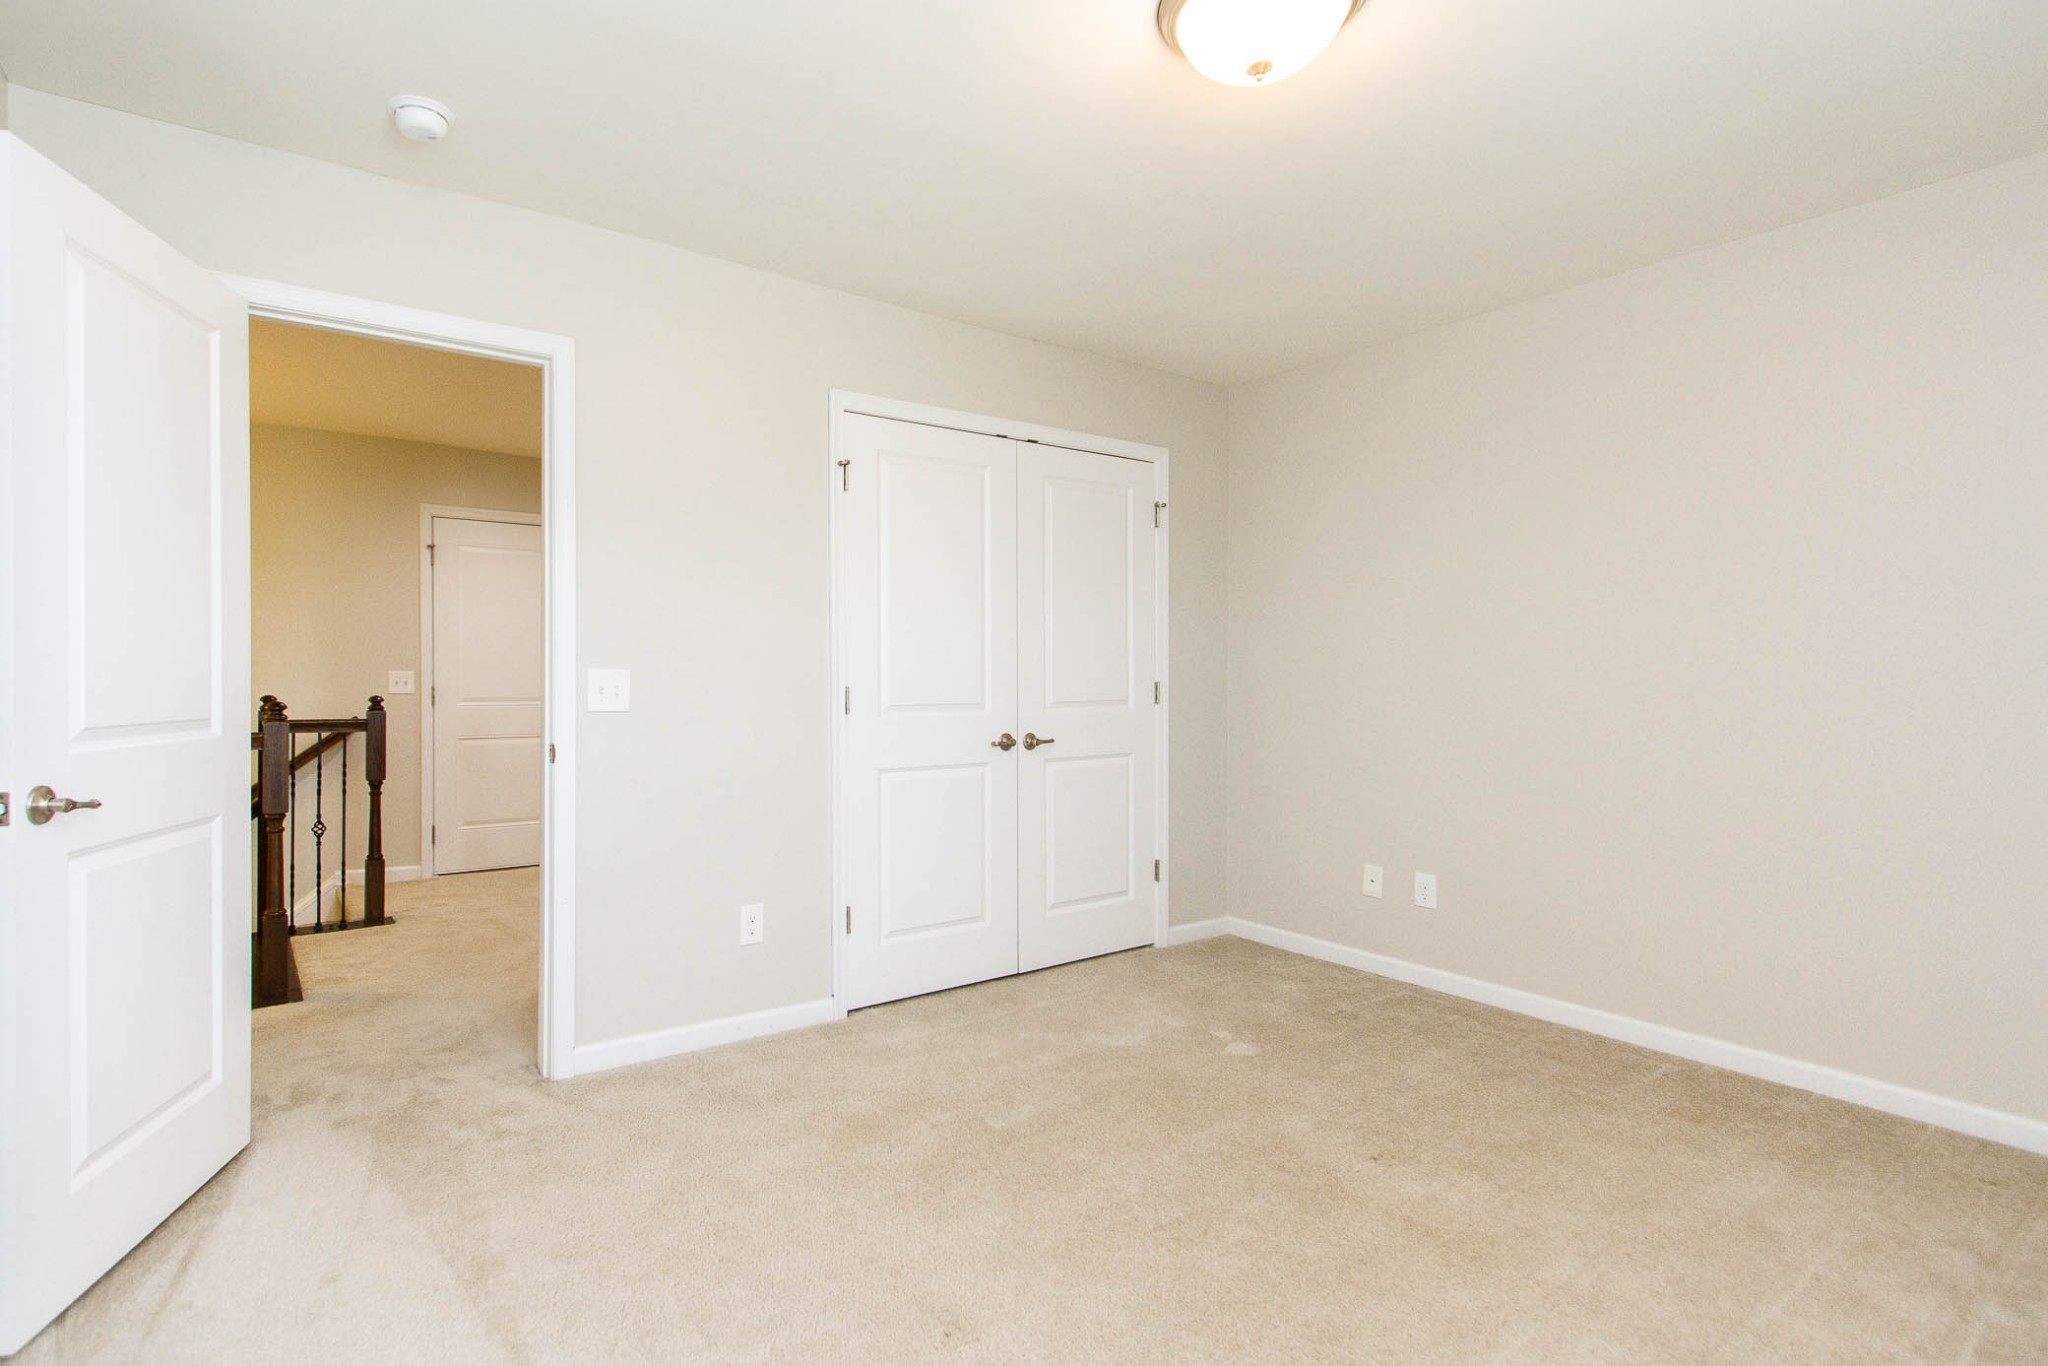 1031 New Eanes Dr Property Photo 37